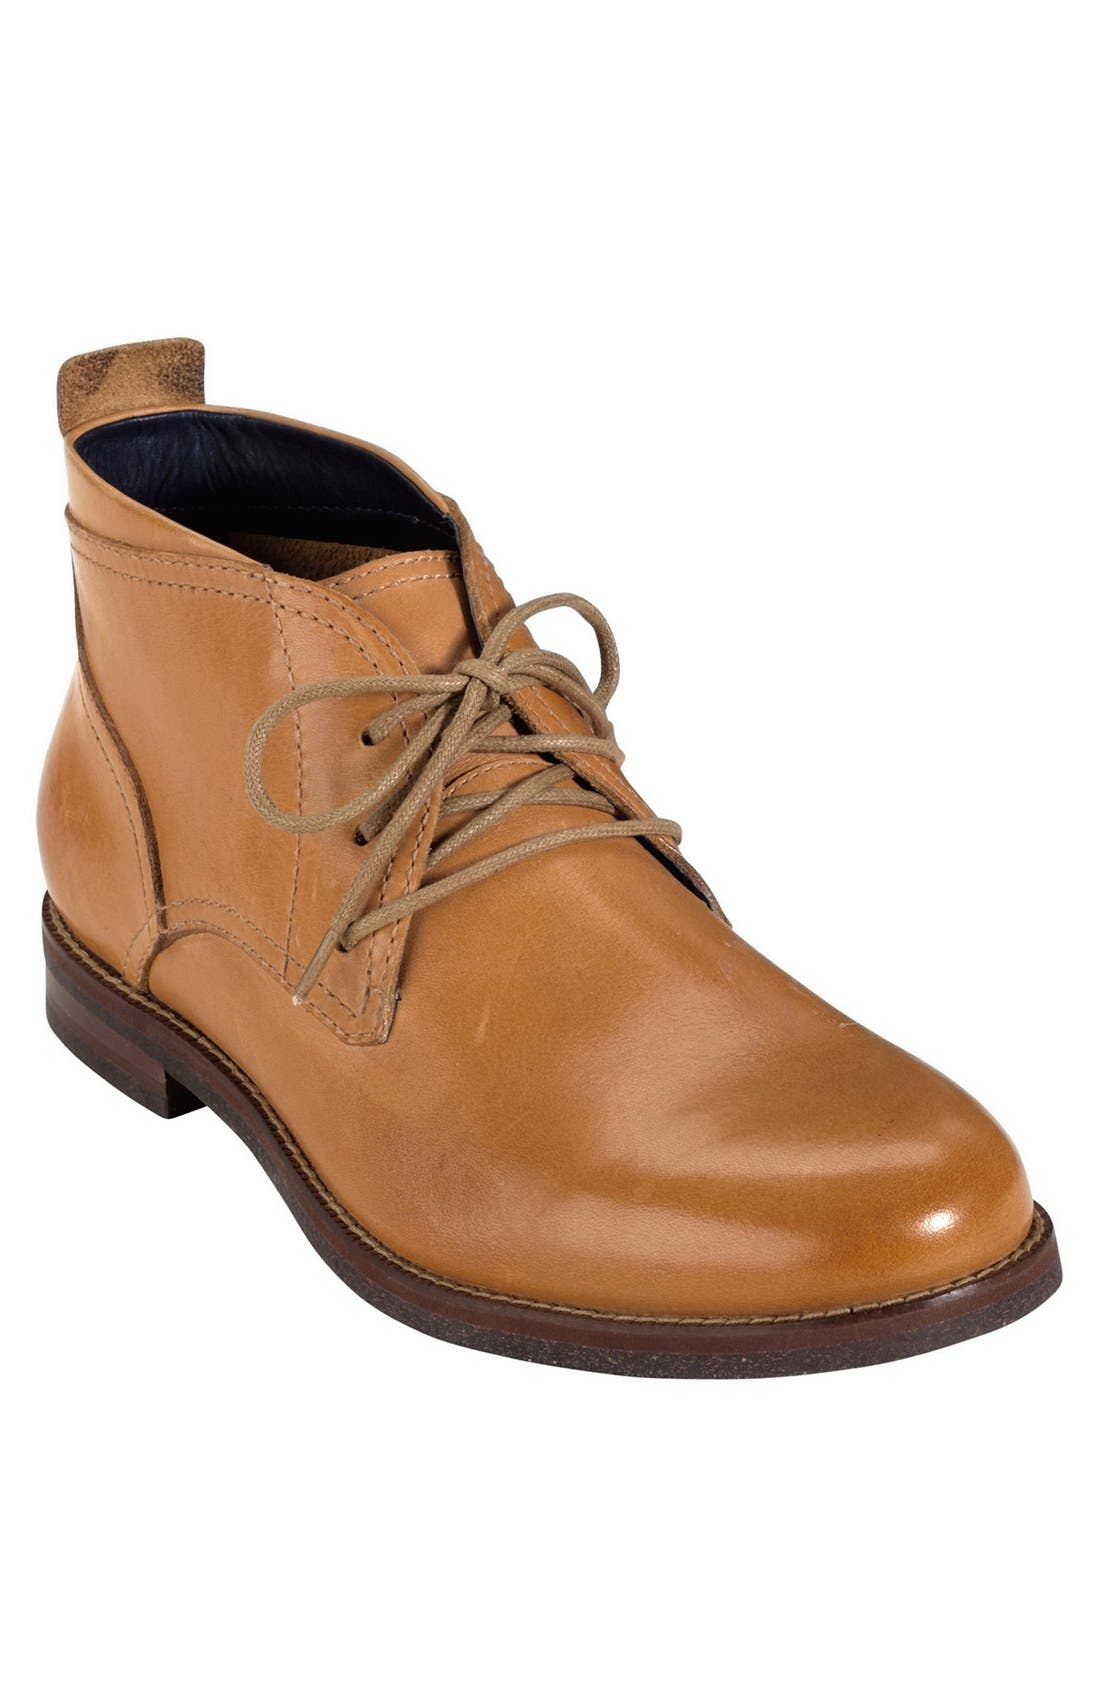 Main Image - Cole Haan 'Air Charles' Chukka Boot